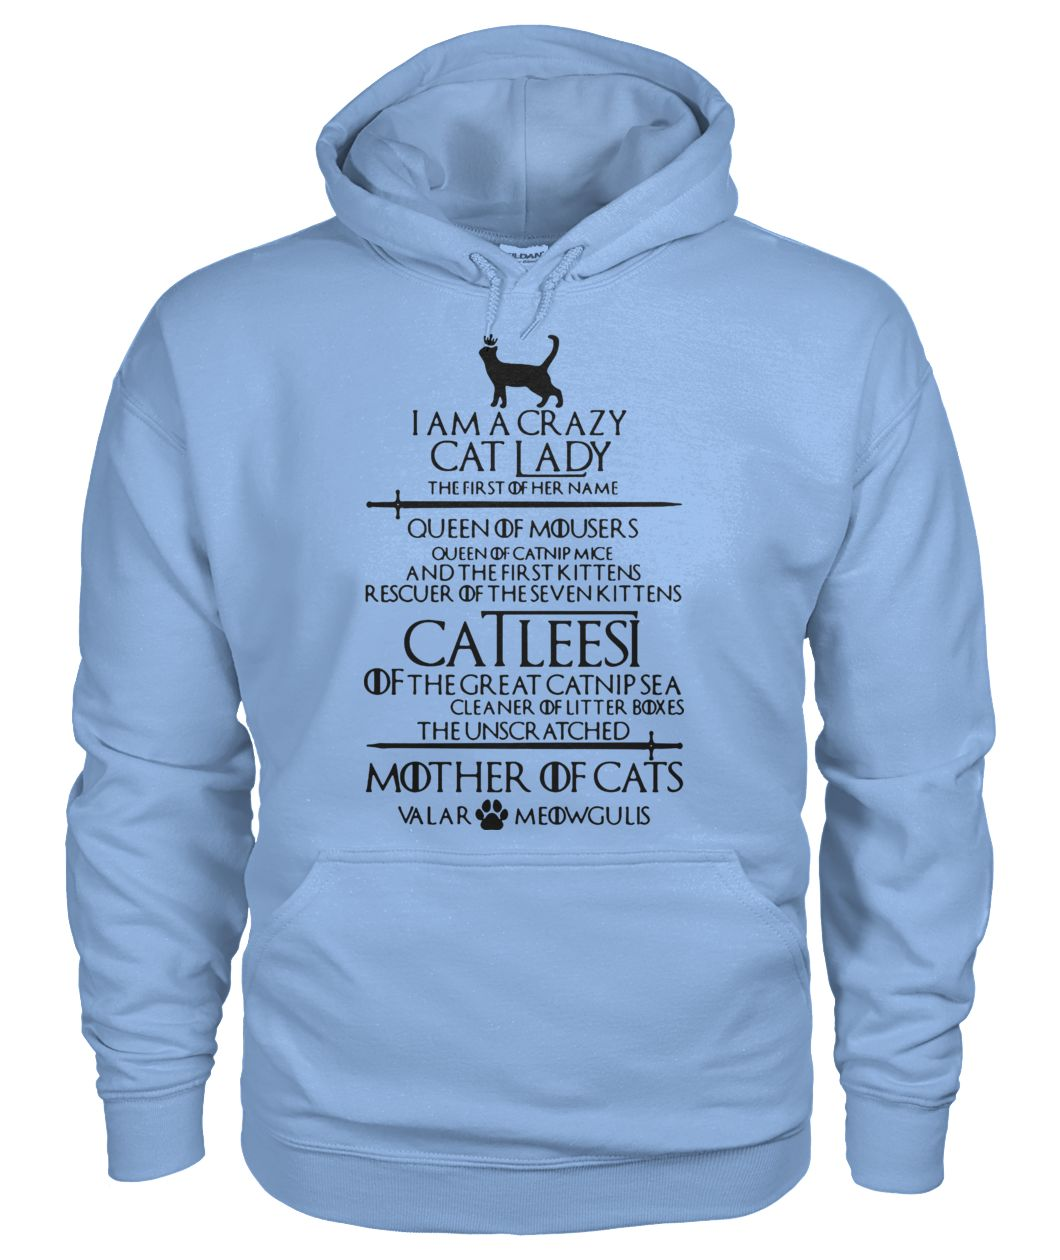 Game of thrones I am a crazy cat lady queen of mousers catleesi mother of cats gildan hoodie